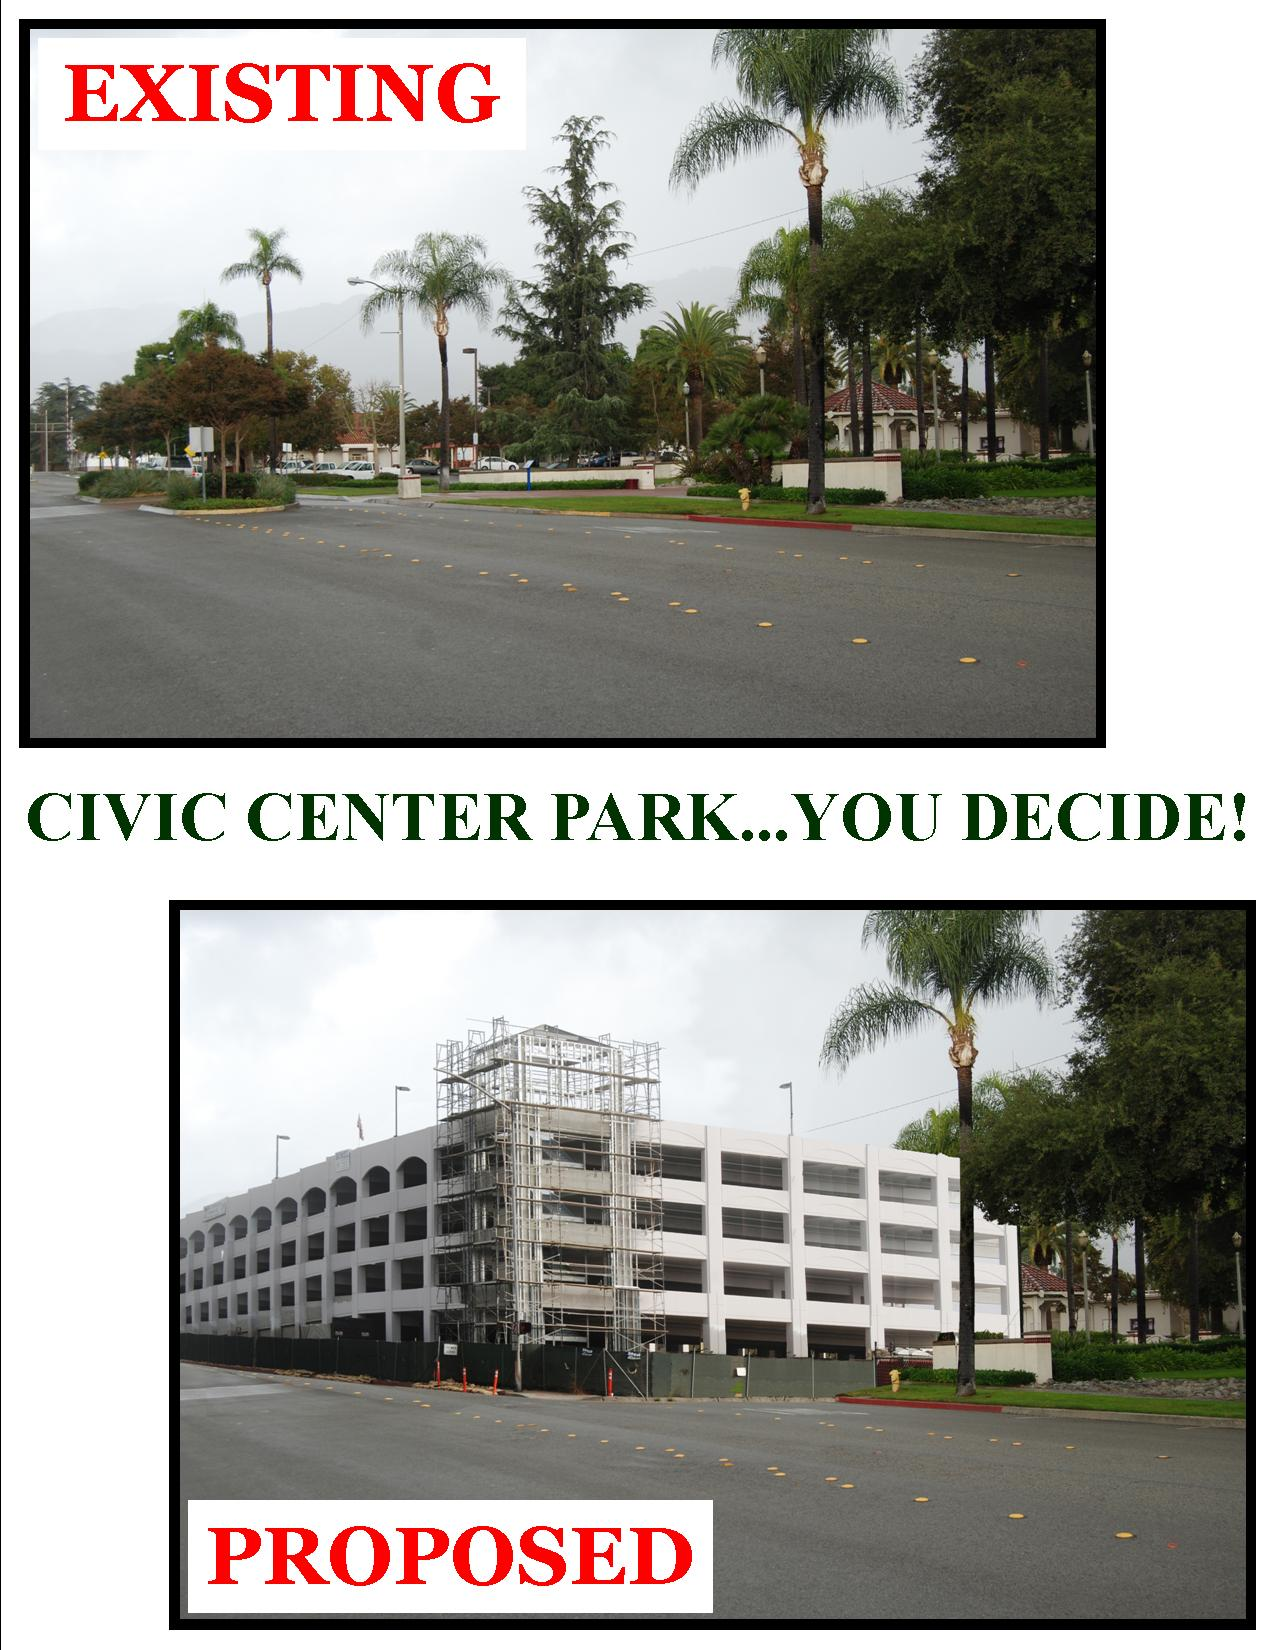 57736-Civic_Center_Park_Exist-Proposed_3B.jpg